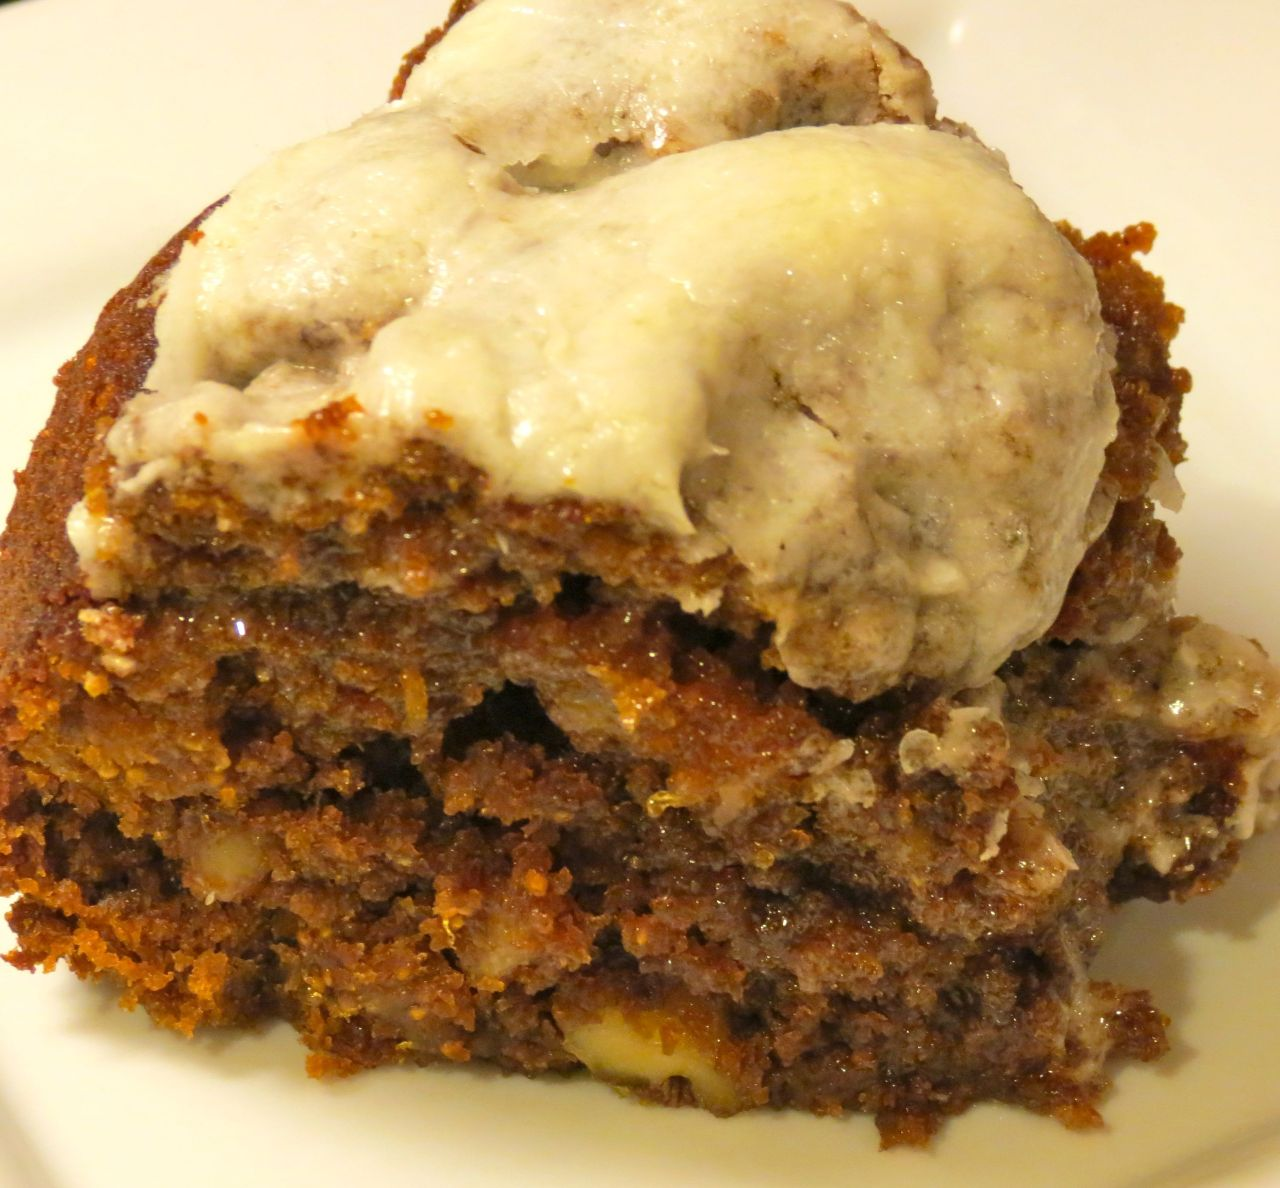 Figgy Pudding Final Picture